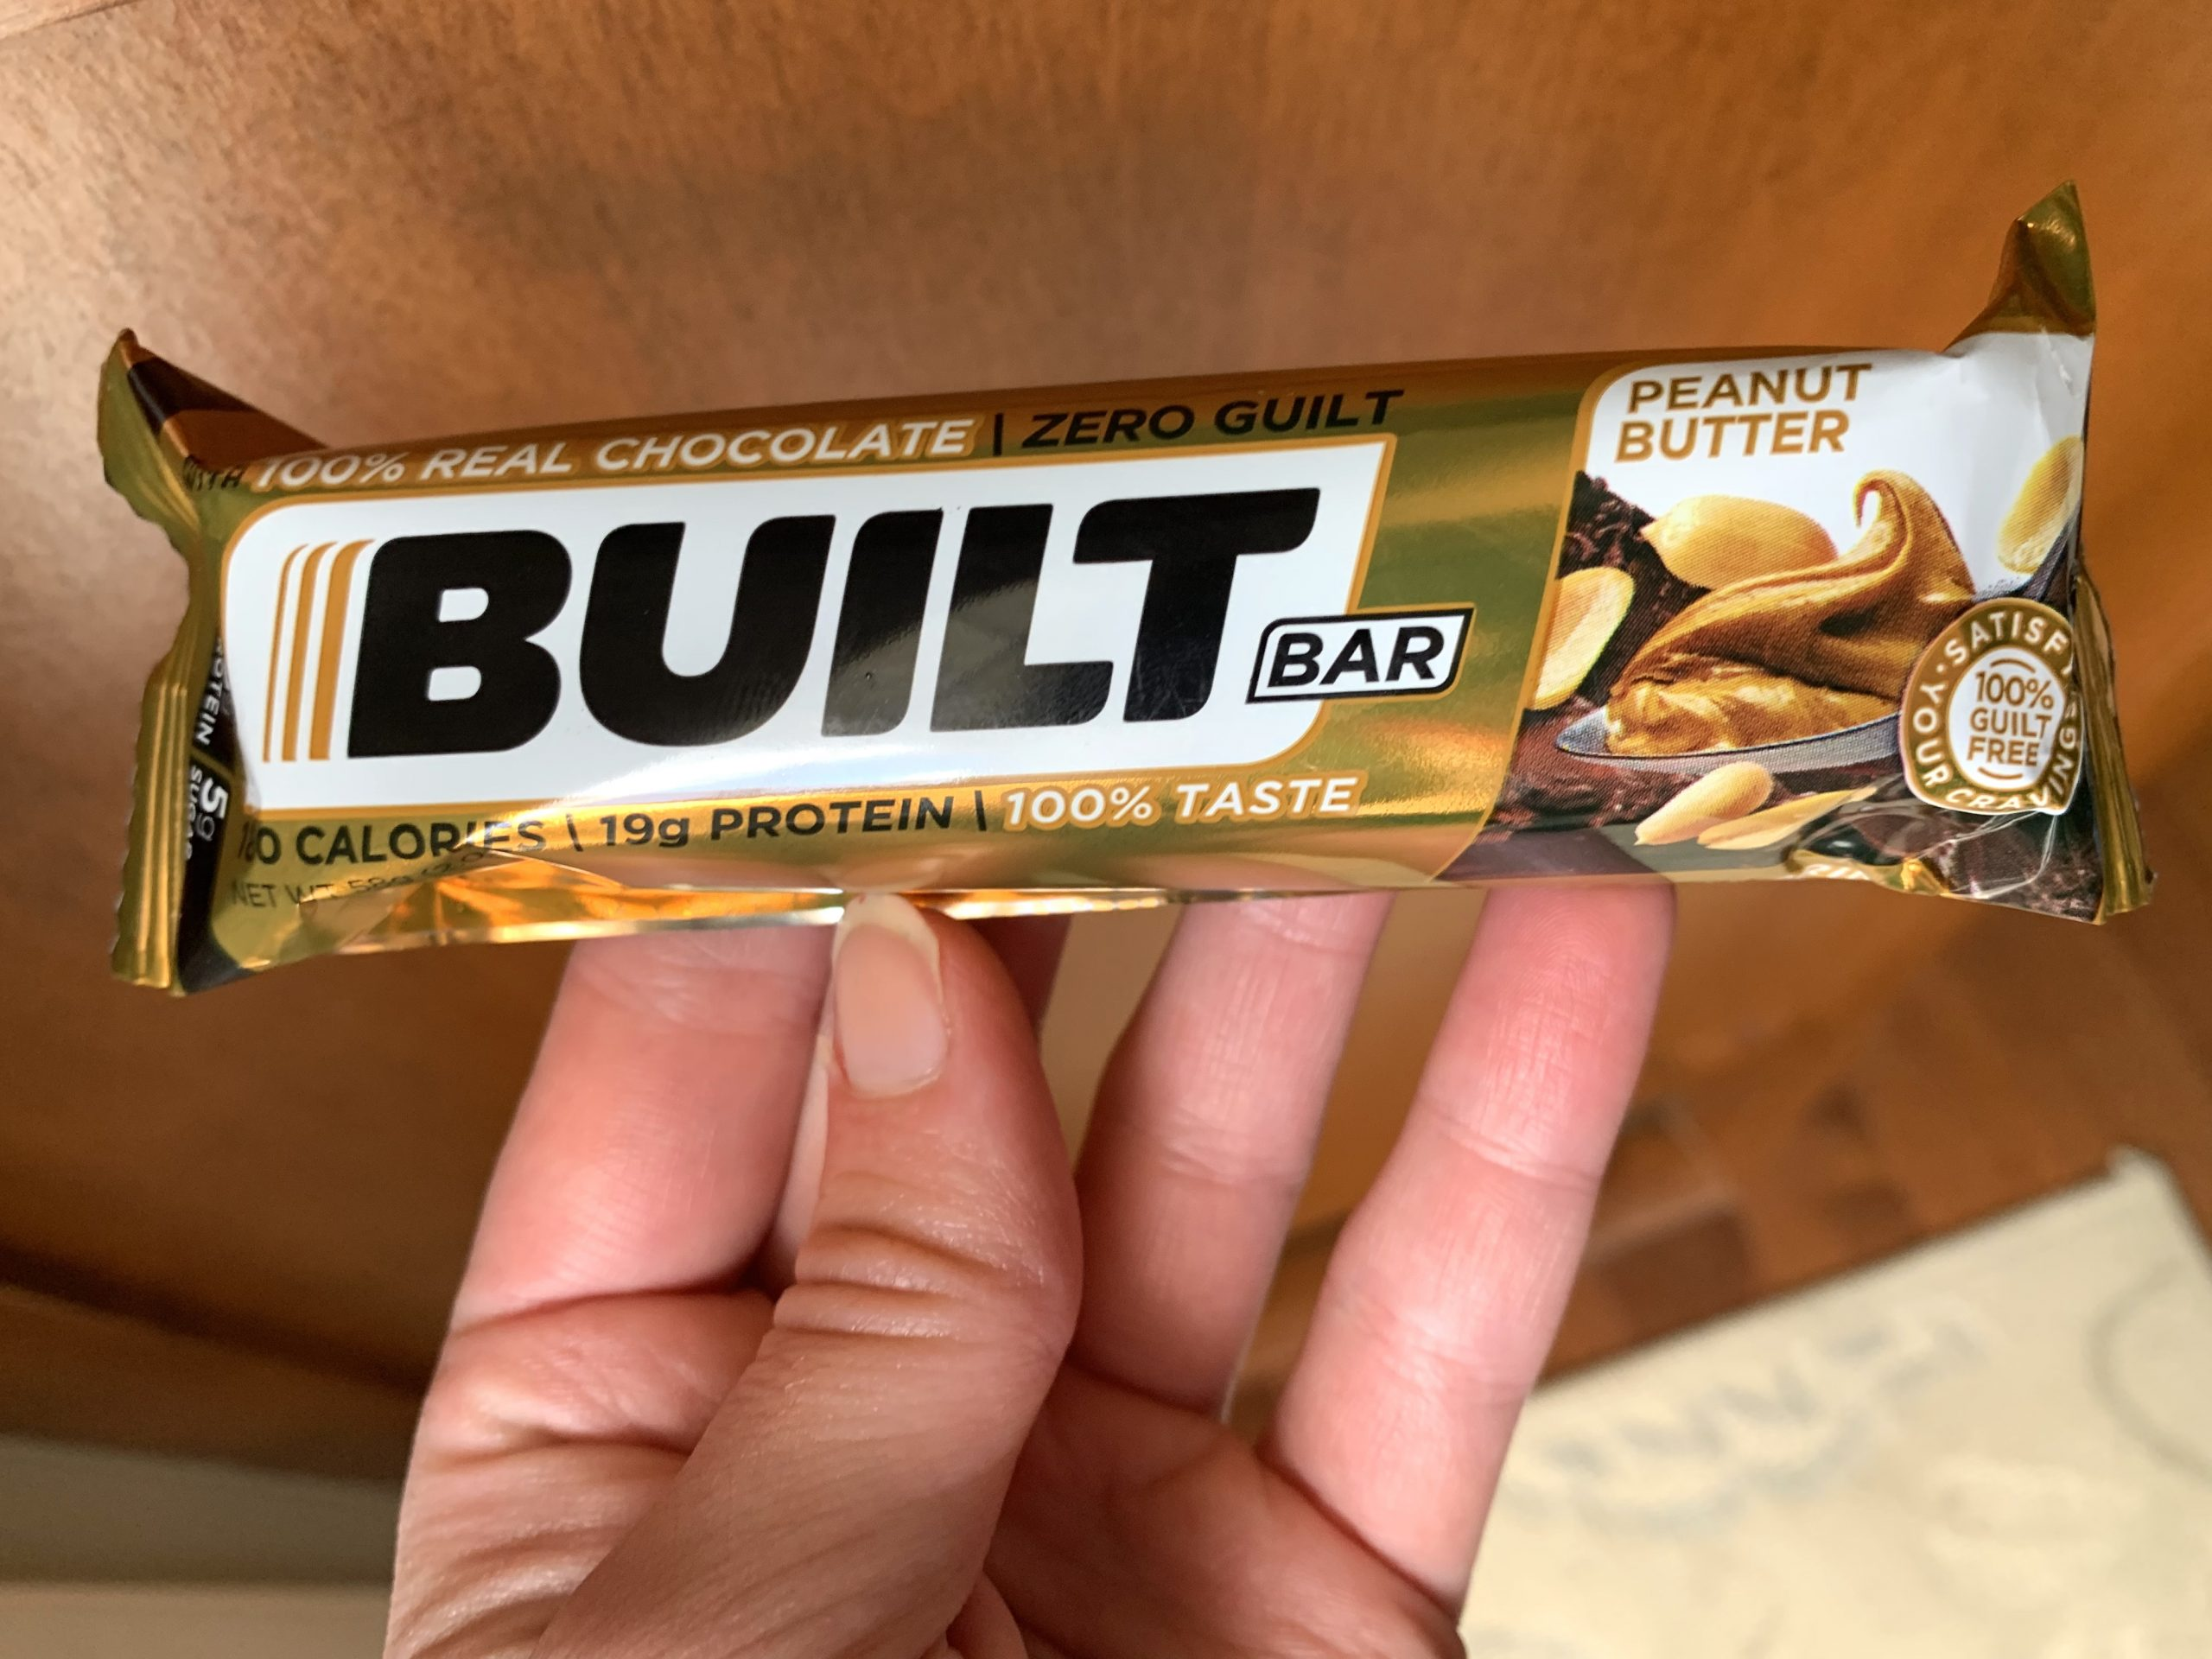 built bar peanut butter review